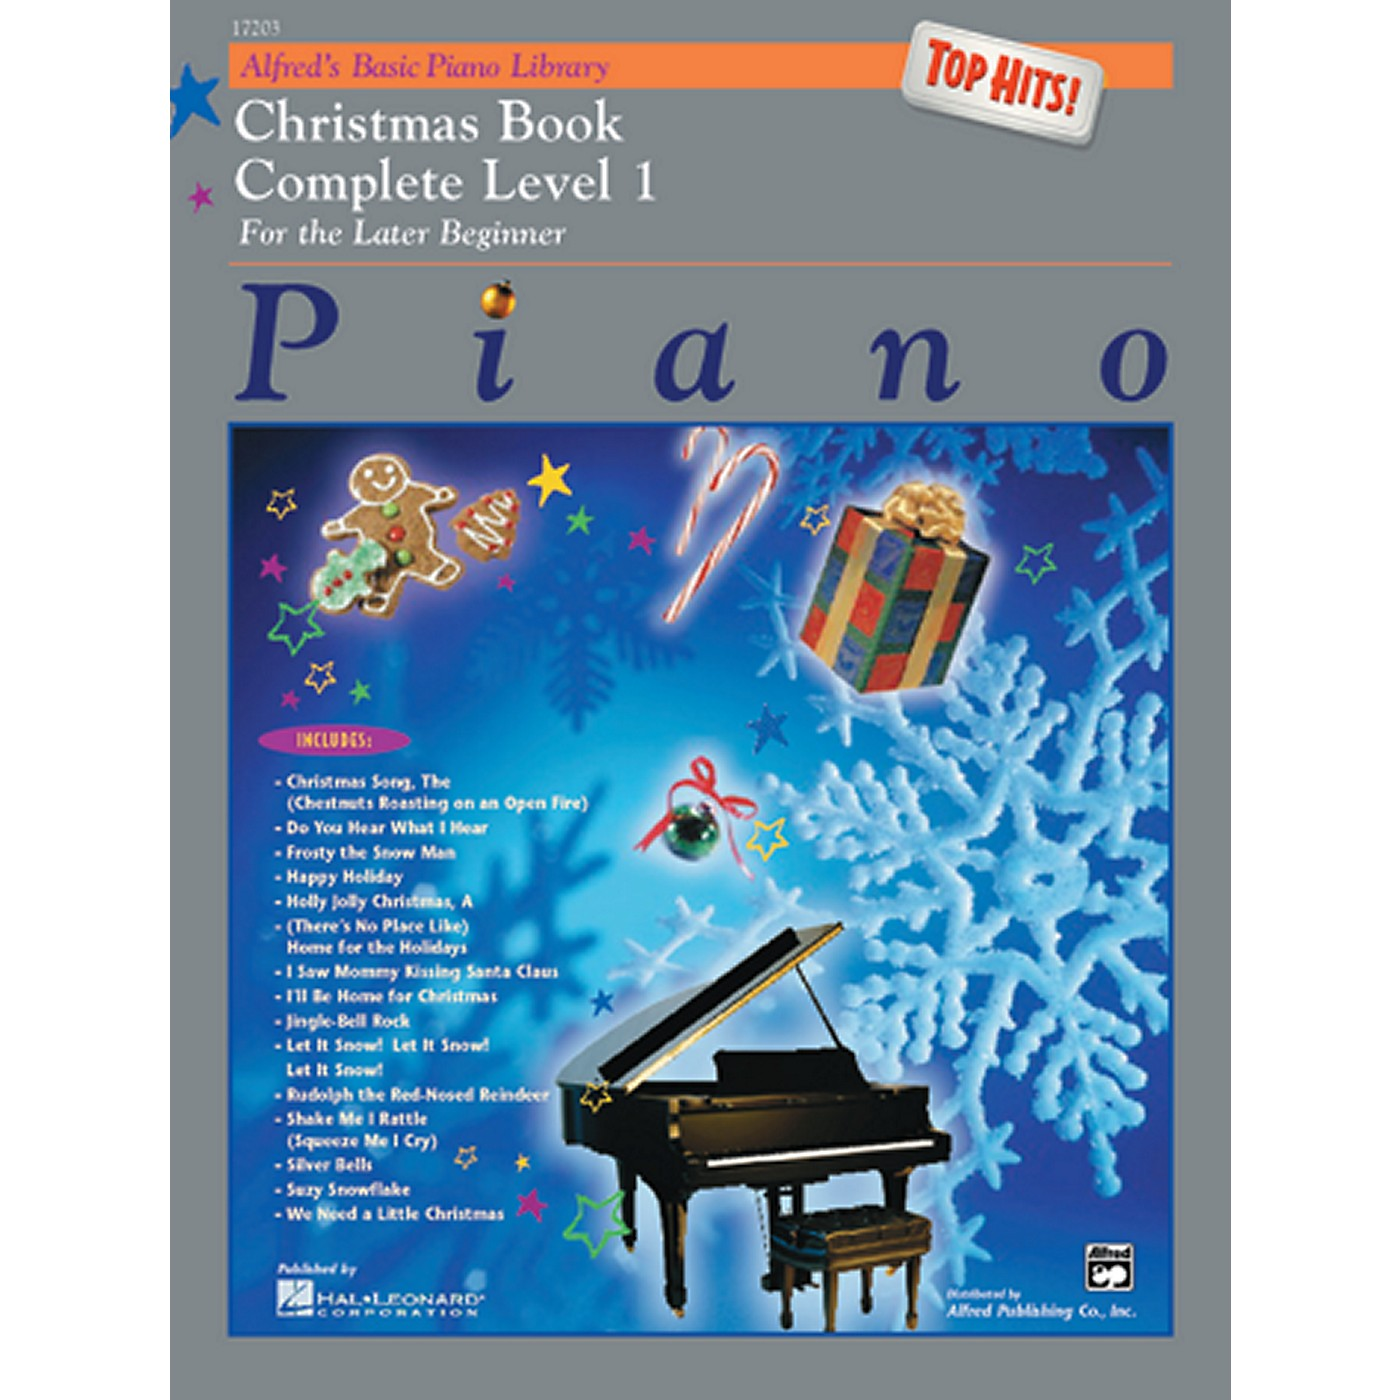 Alfred Alfred's Basic Piano Course Top Hits! Christmas Book Complete 1 (1A/1B) thumbnail